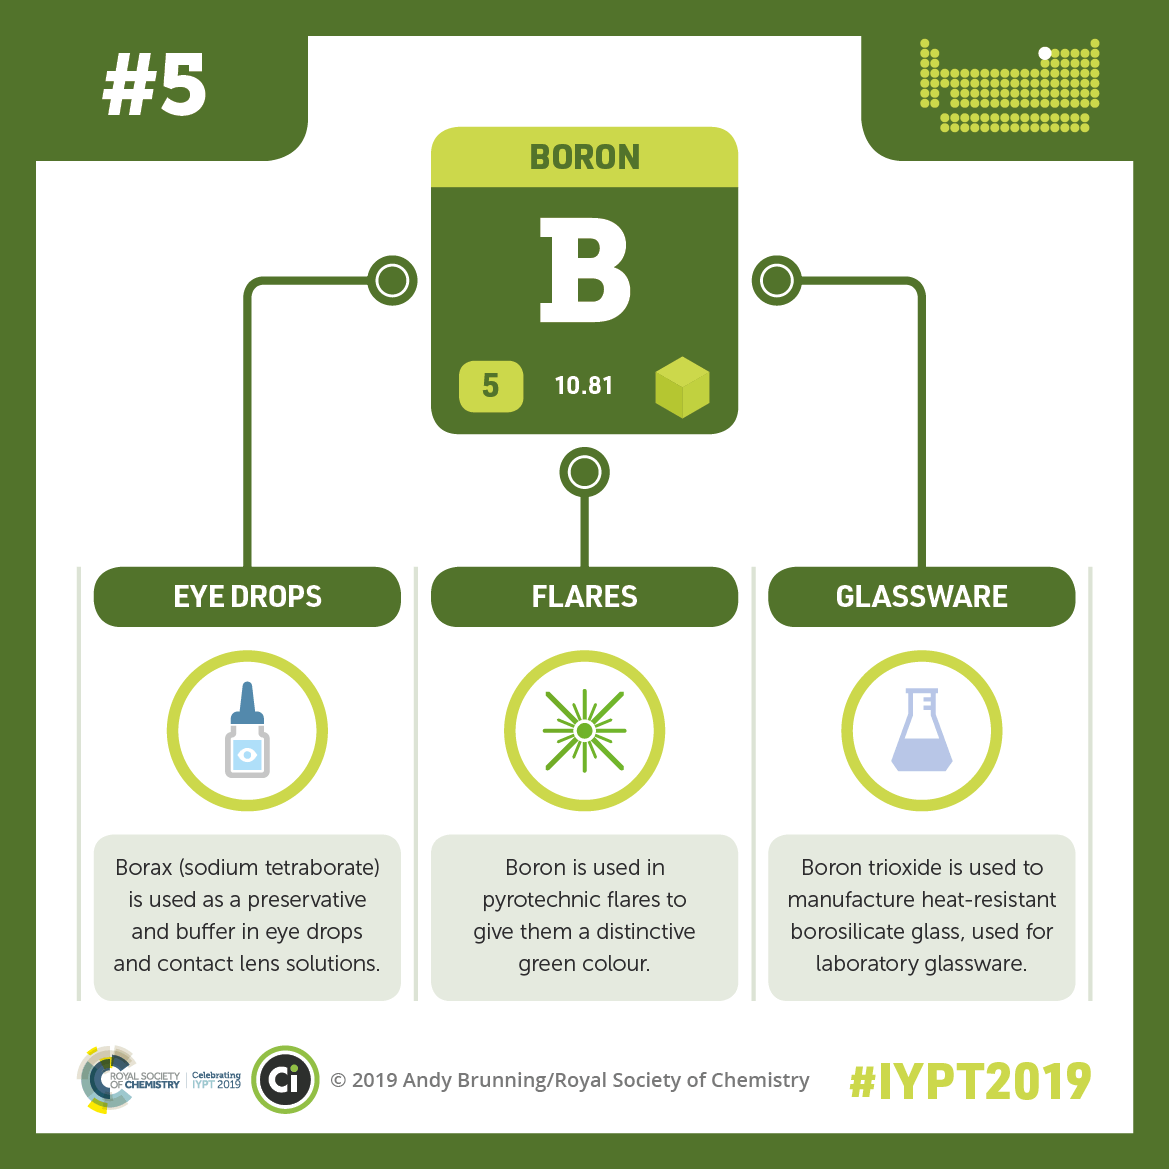 IYPT 2019 Elements 005: Boron, flares and (glass)wares